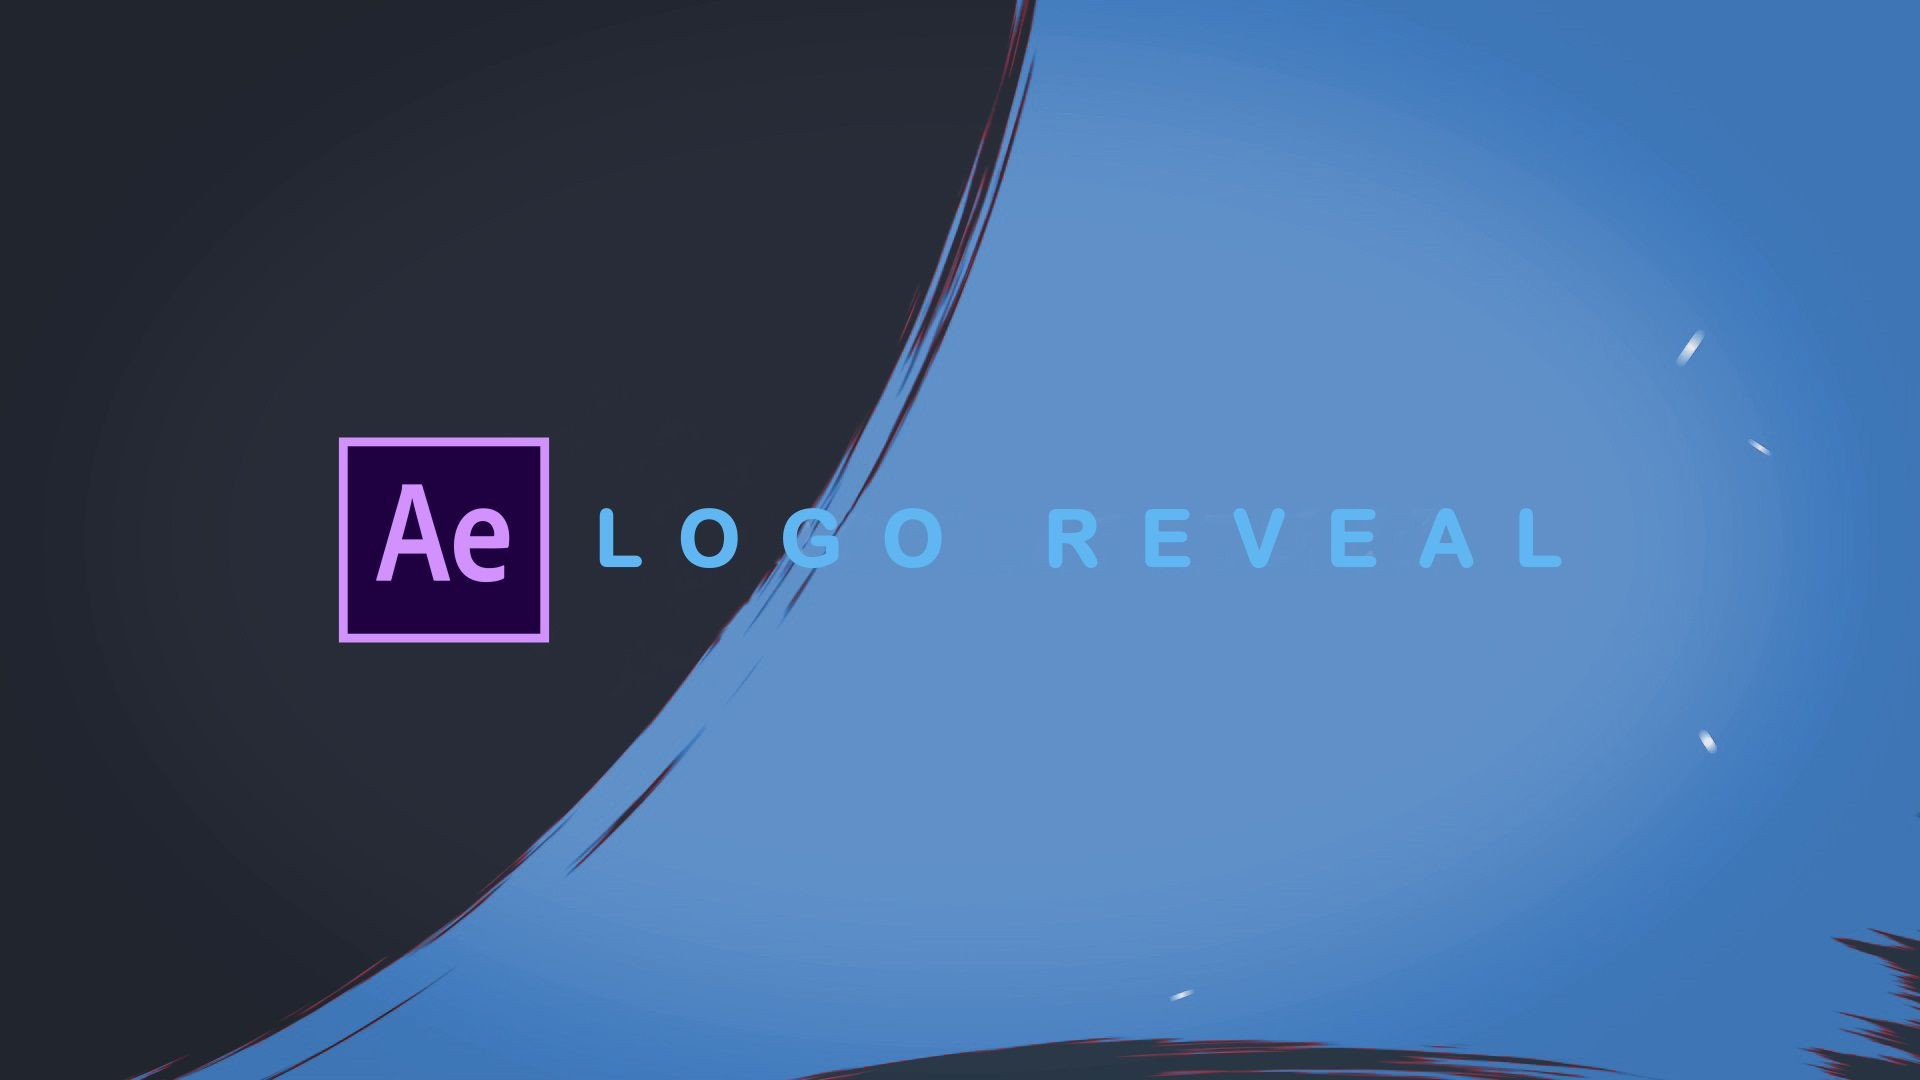 005 Fantastic Free After Effect Template Particle Logo Reveal Download Design  -1920